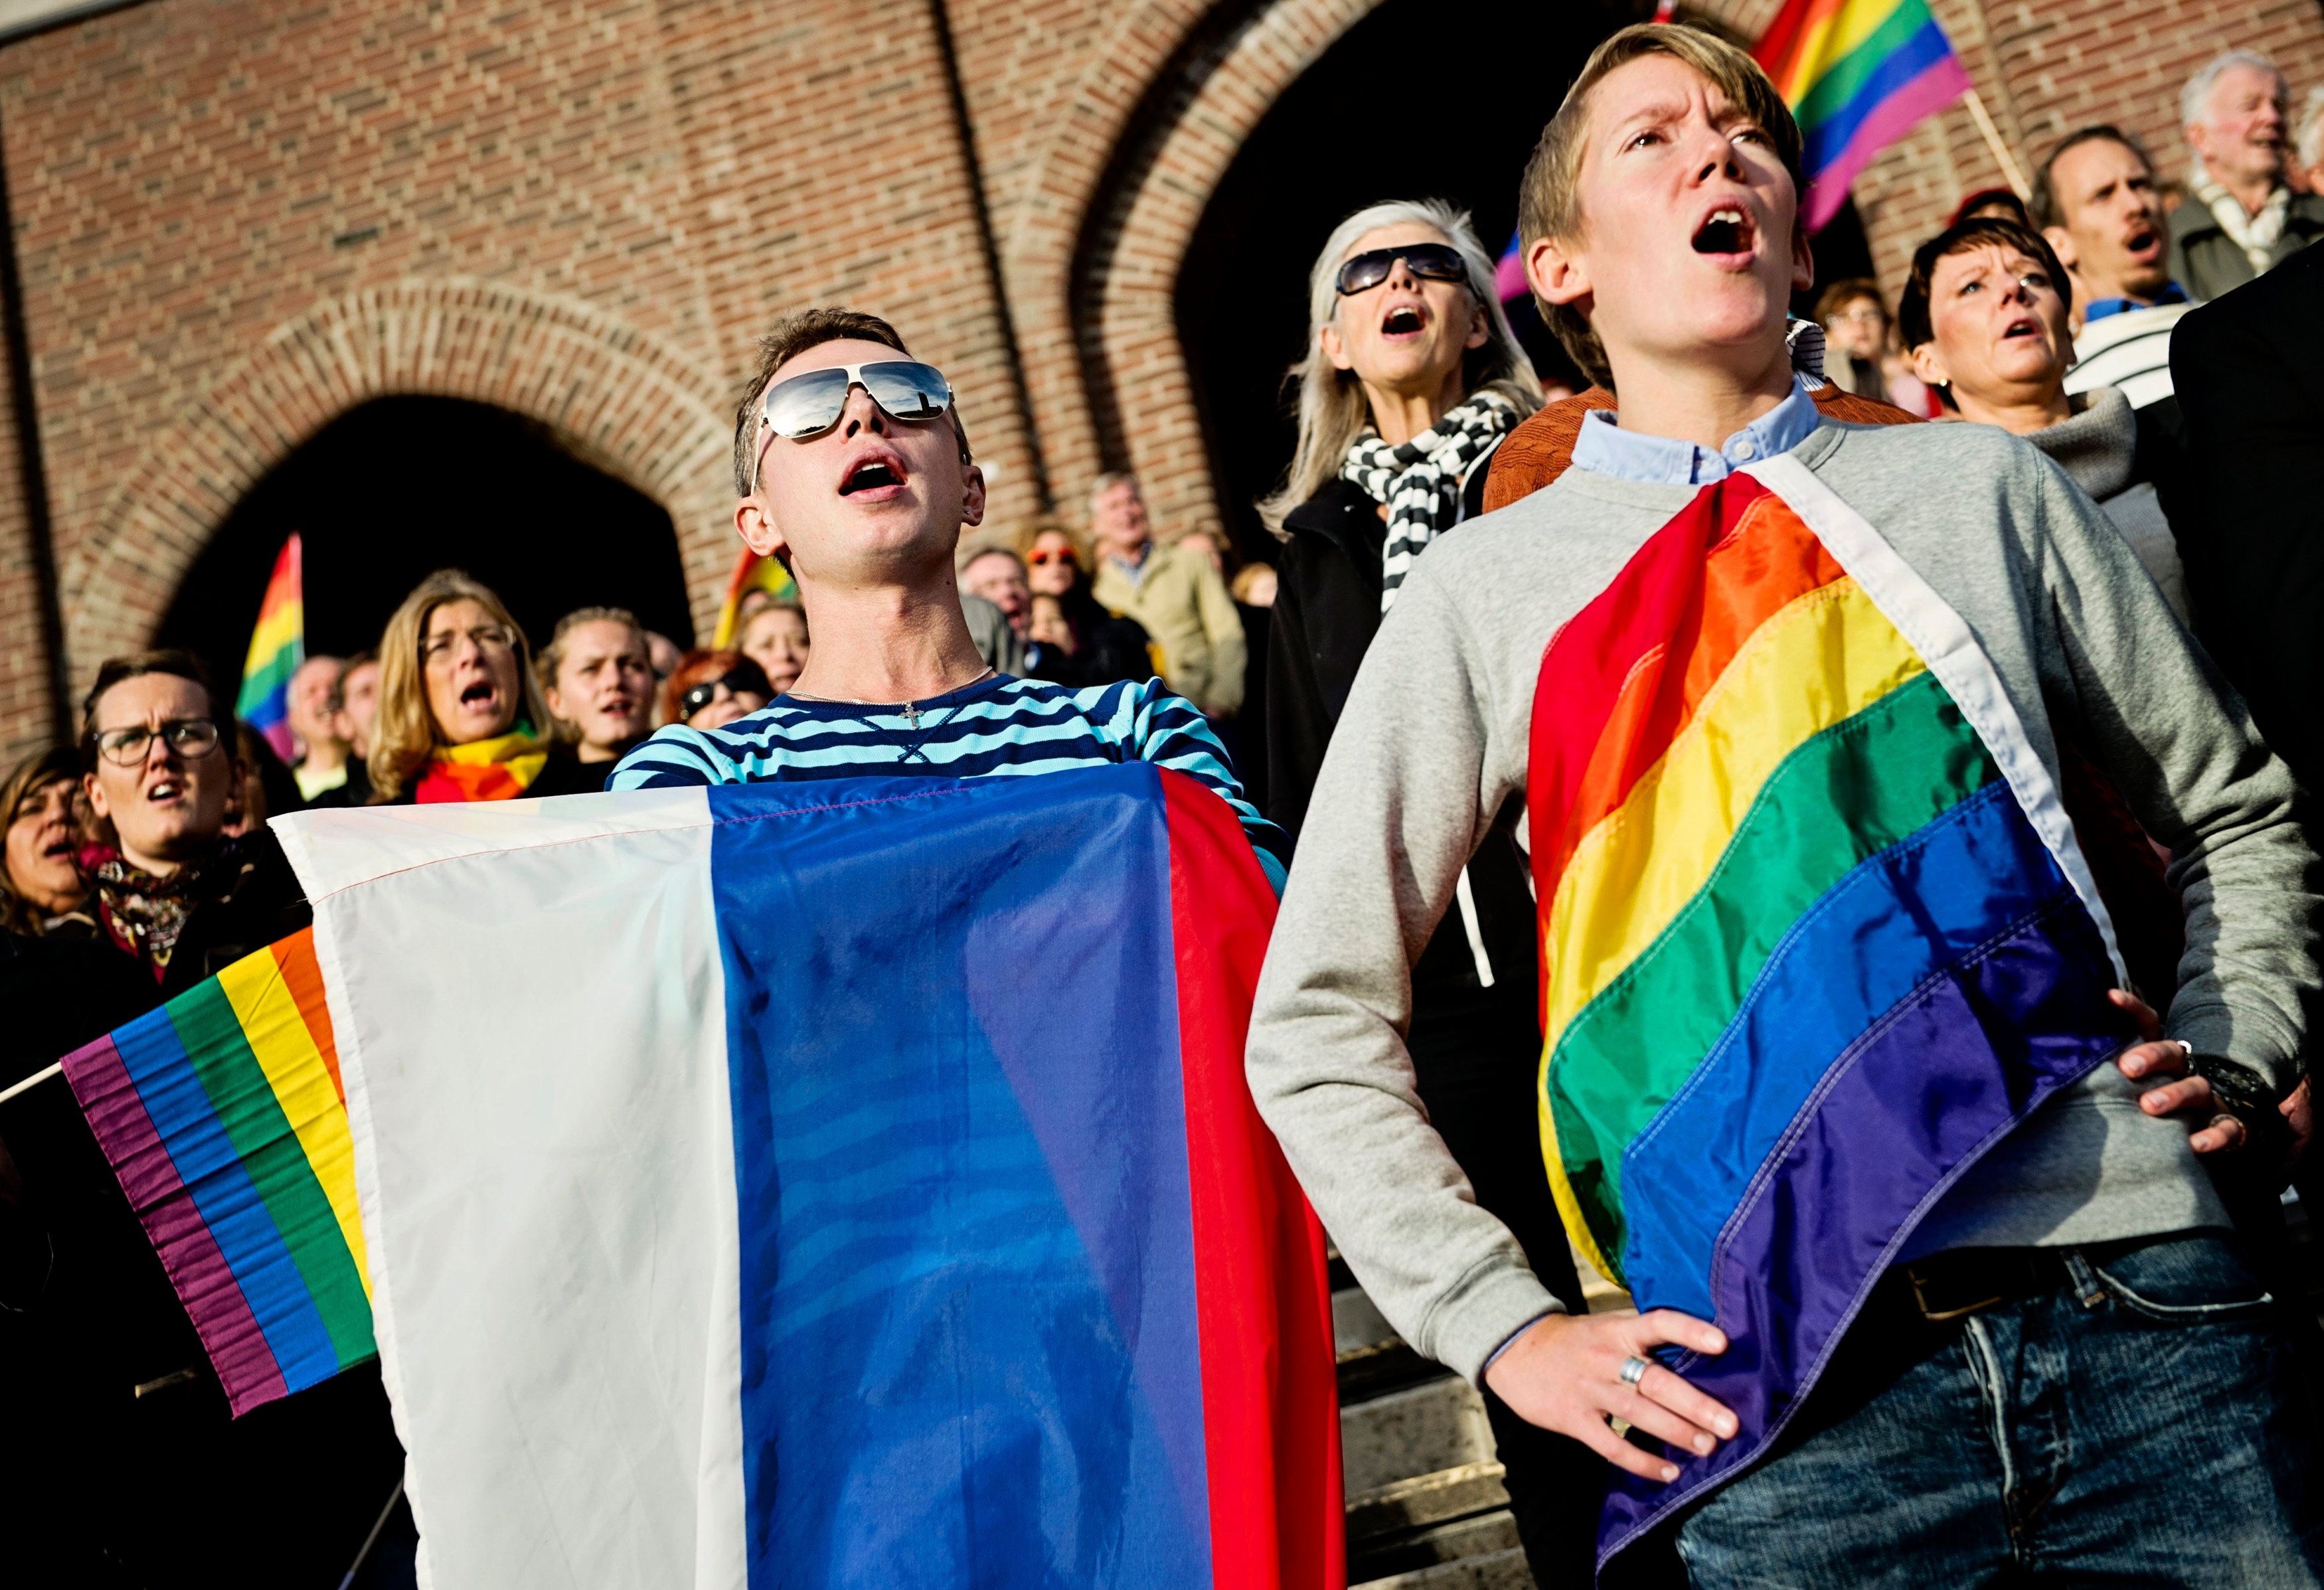 """People sing the Russian national anthem while raising rainbow flags and a Russian flag (C) in solidarity with the lesbian, gay, bisexual and transgender (LGBT) community of Russia, as part of a film project called """"Live and Let Love"""", at the Stockholm Olympic Stadium October 6, 2013. Footage of the crowd singing will be cut together with other musicians from around the world singing the anthem, and the film will be uploaded on YouTube a month ahead of the 2014 Sochi Olympics. Russia has come under fire from activists who argue that a law banning """"gay propaganda"""" bars all gay rights rallies and could be used to prosecute anyone voicing support for homosexuals. REUTERS/Erik Martensson/TT News Agency (SWEDEN - Tags: POLITICS SOCIETY SPORT OLYMPICS) ATTENTION EDITORS - THIS IMAGE WAS PROVIDED BY A THIRD PARTY. FOR EDITORIAL USE ONLY. NOT FOR SALE FOR MARKETING OR ADVERTISING CAMPAIGNS. THIS PICTURE IS DISTRIBUTED EXACTLY AS RECEIVED BY REUTERS, AS A SERVICE TO CLIENTS. SWEDEN OUT. NO COMMERCIAL OR EDITORIAL SALES IN SWEDEN. NO COMMERCIAL SALES"""